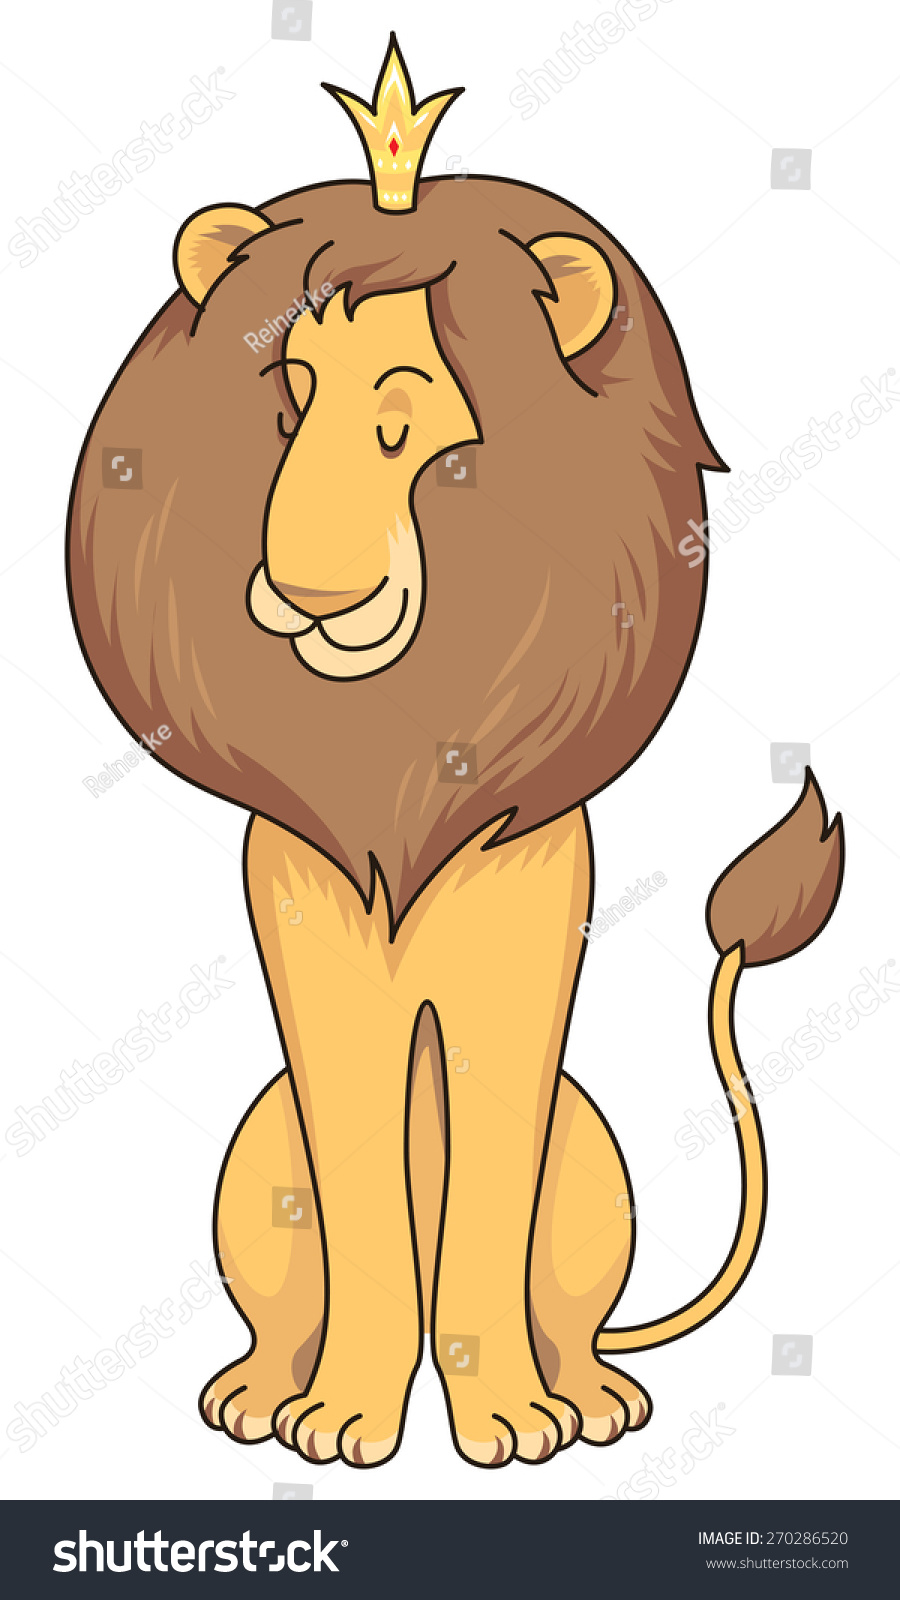 Cartoon Character Sitting Lion Crown Isolated Stock Vector Royalty Free 270286520 Funny animals in flower wreaths happy animal head vector. https www shutterstock com image vector cartoon character sitting lion crown isolated 270286520